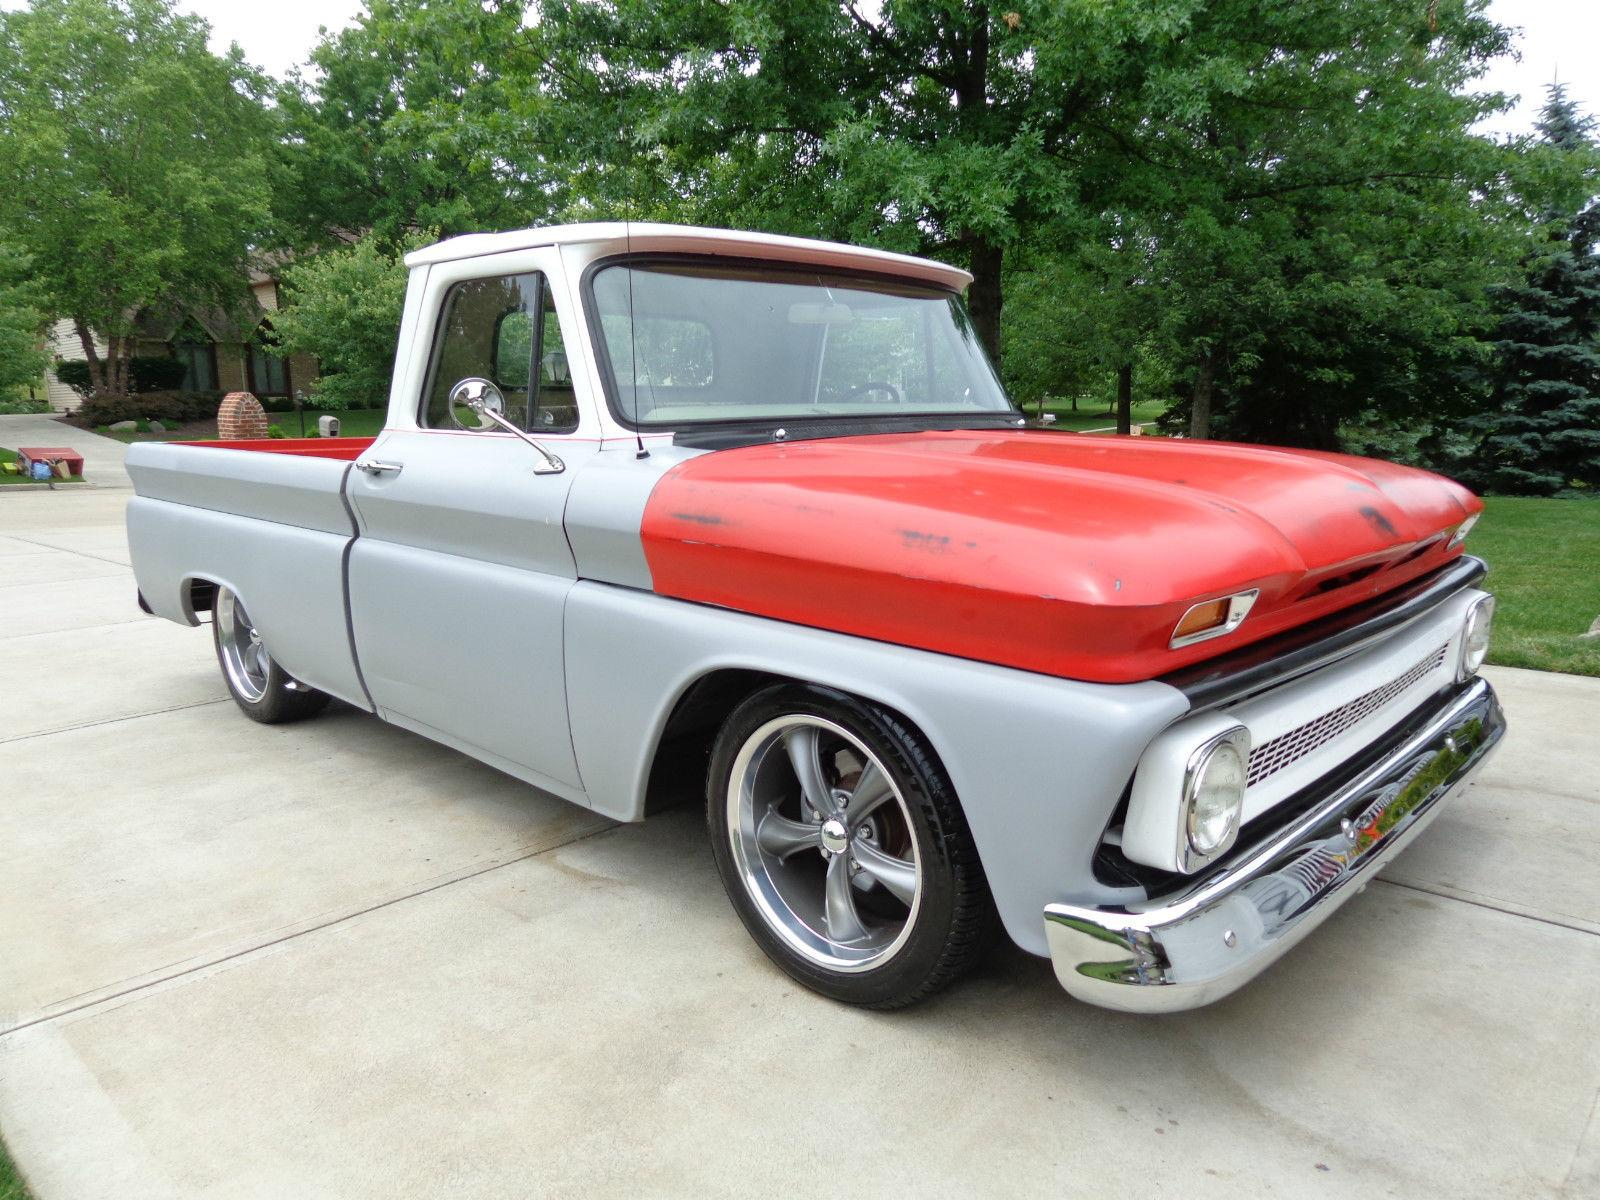 1966 Chevy C10 Resto Mod 7seven Custom Garage Newer Radiator Late Model Master Cylinder Drop Spindle Discs Up Front Rear Adjustable Lowering Shackles On Power Disc Brakes Steering